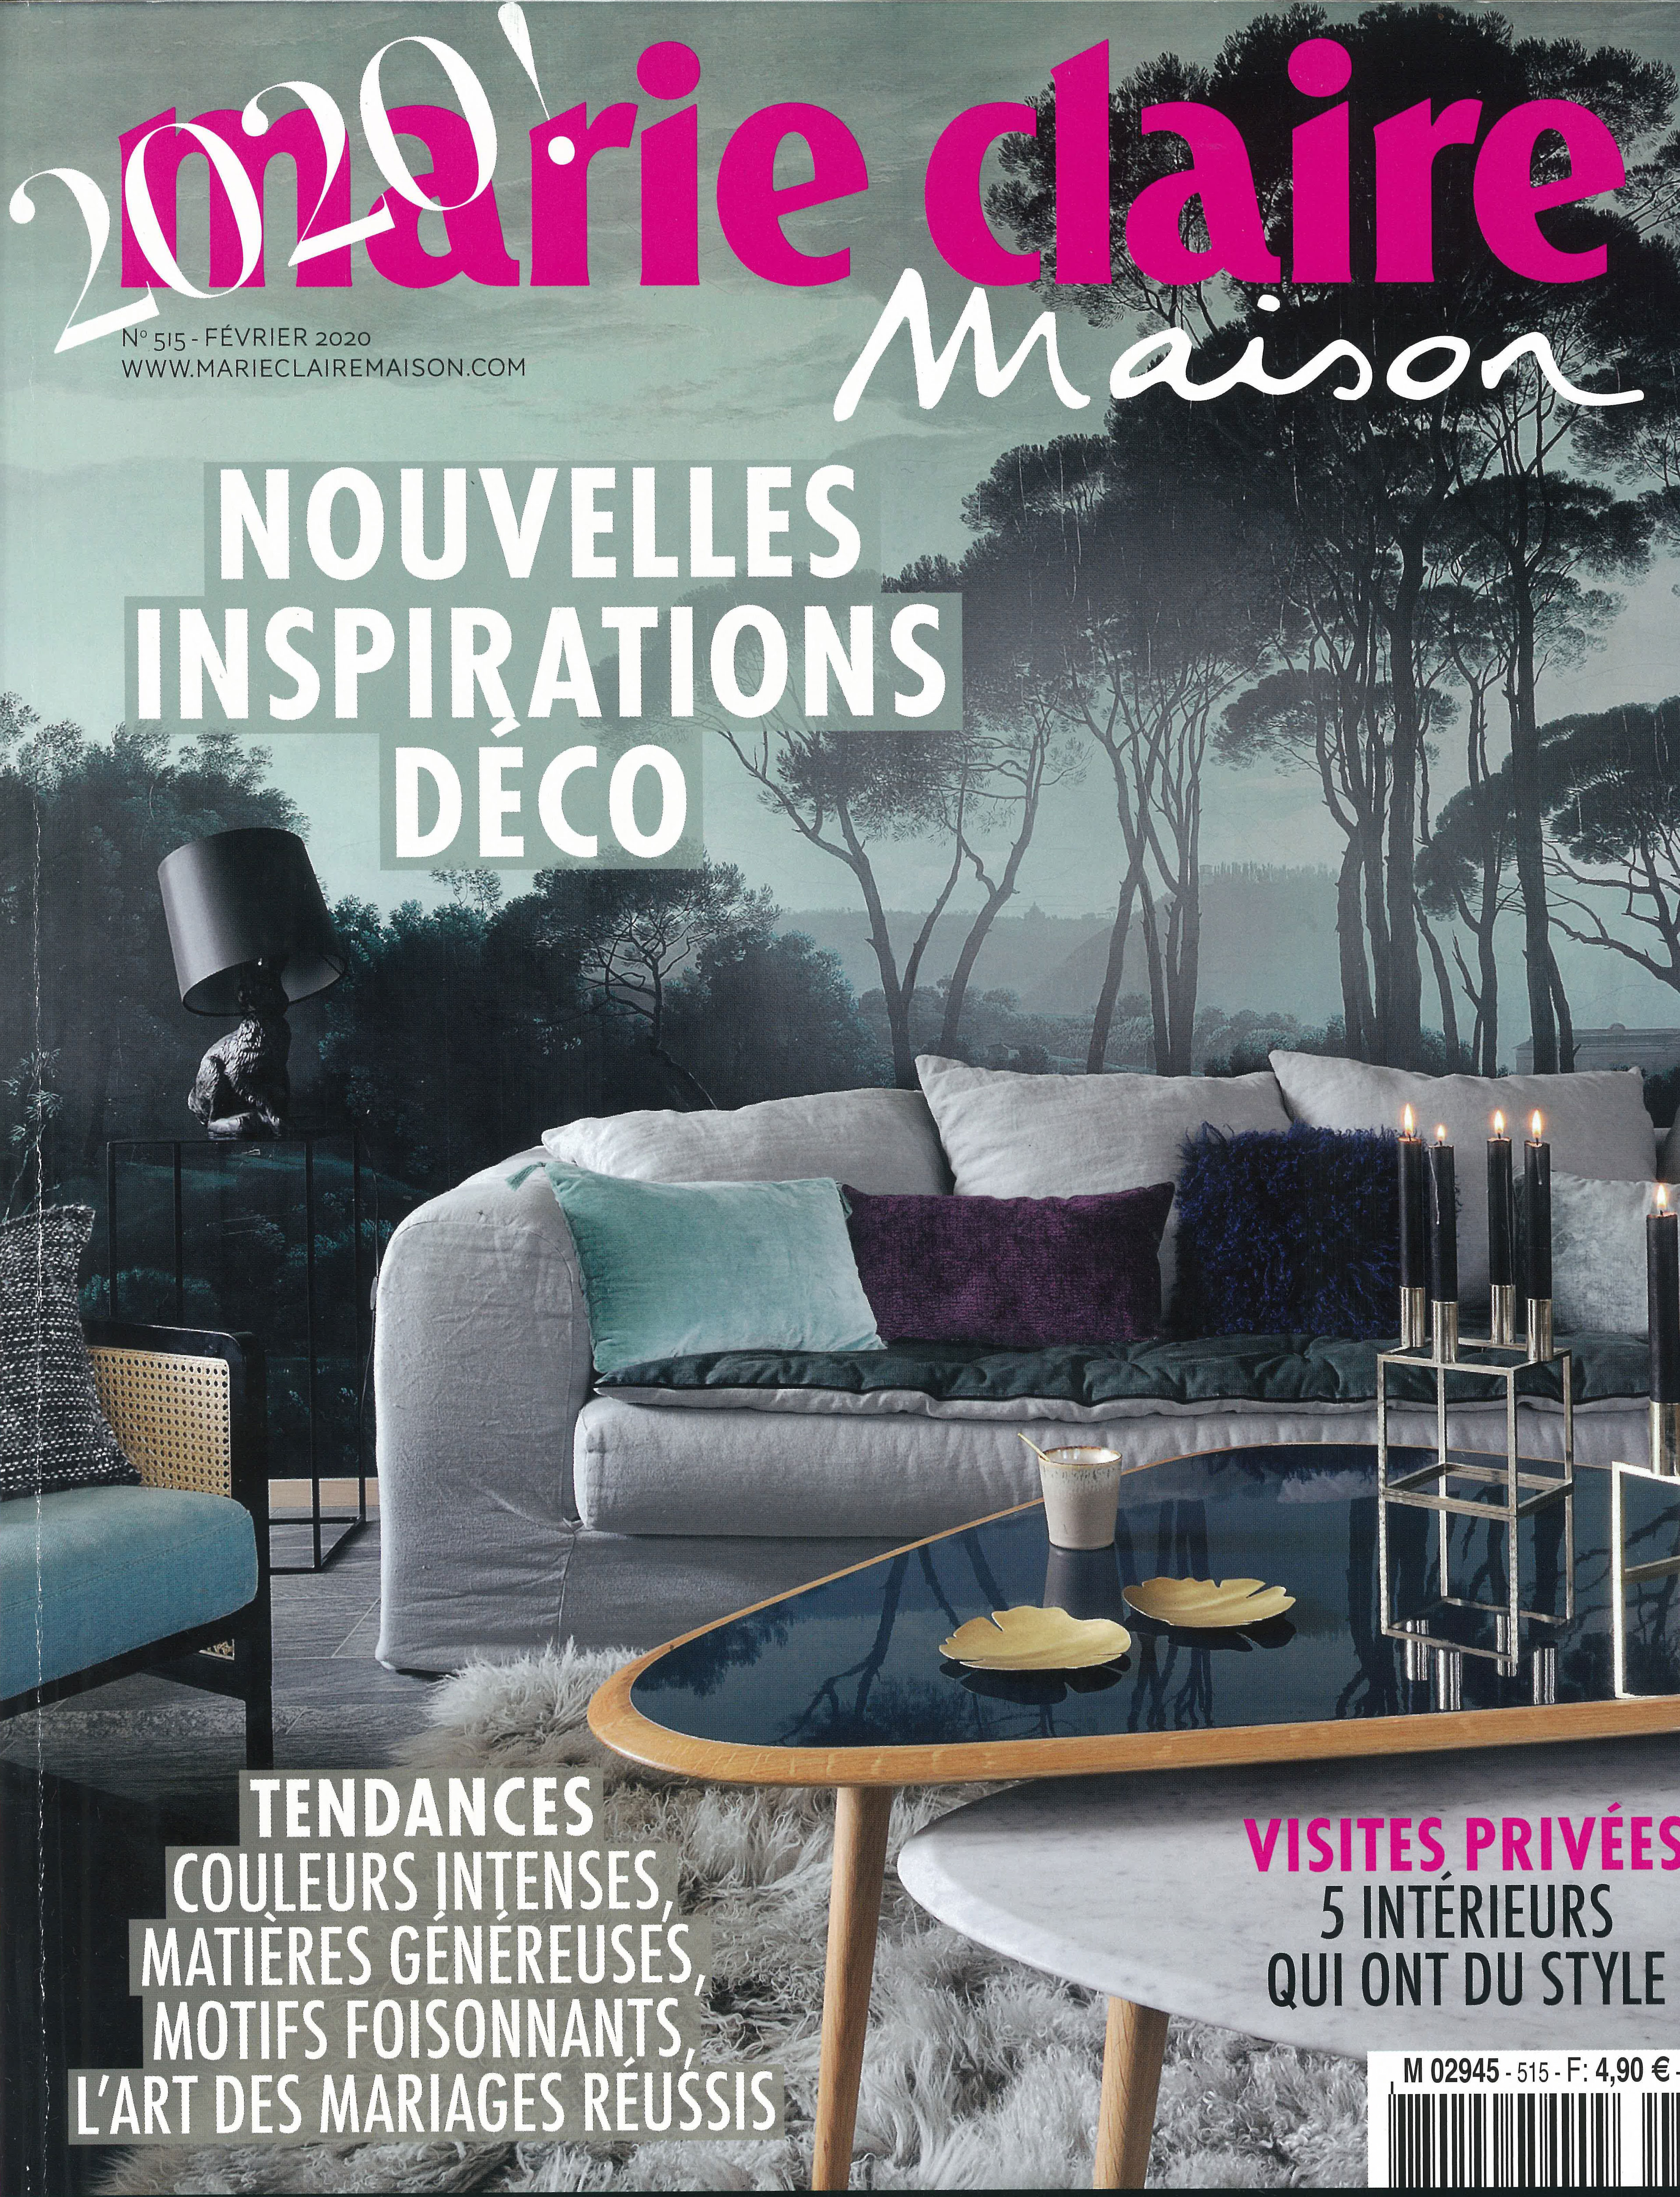 Marie Claire Maison France February 2020